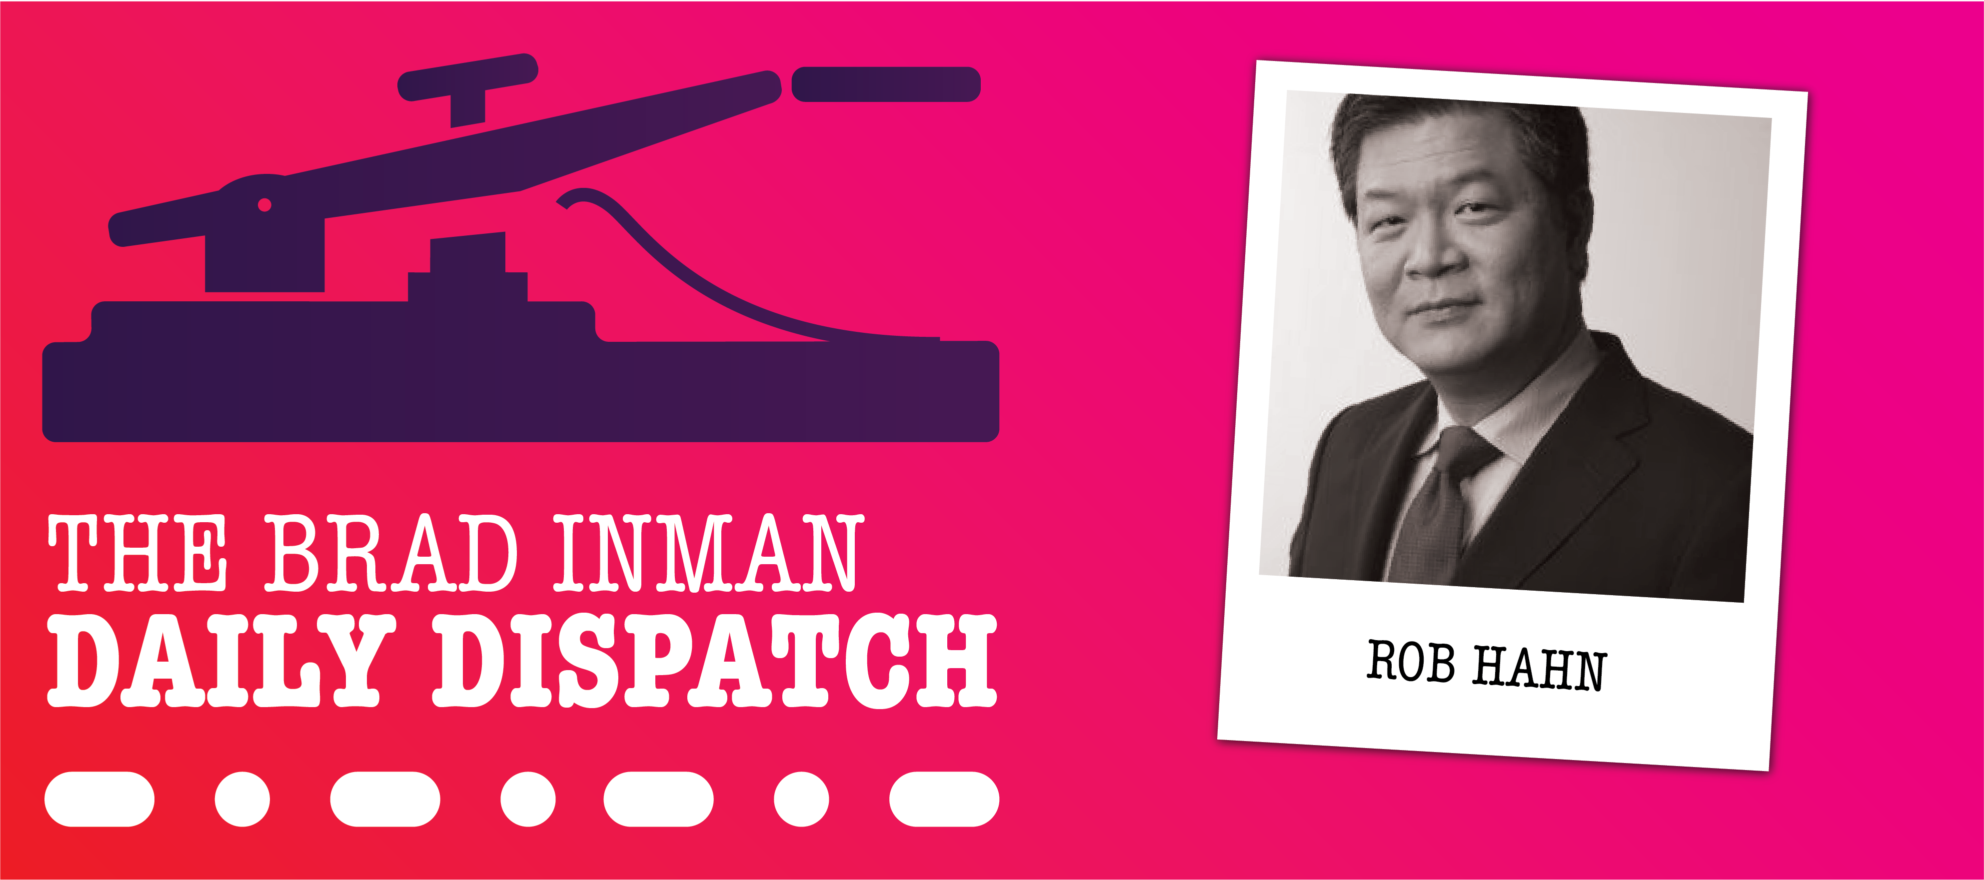 Daily Dispatch: Brad Inman with Rob Hahn